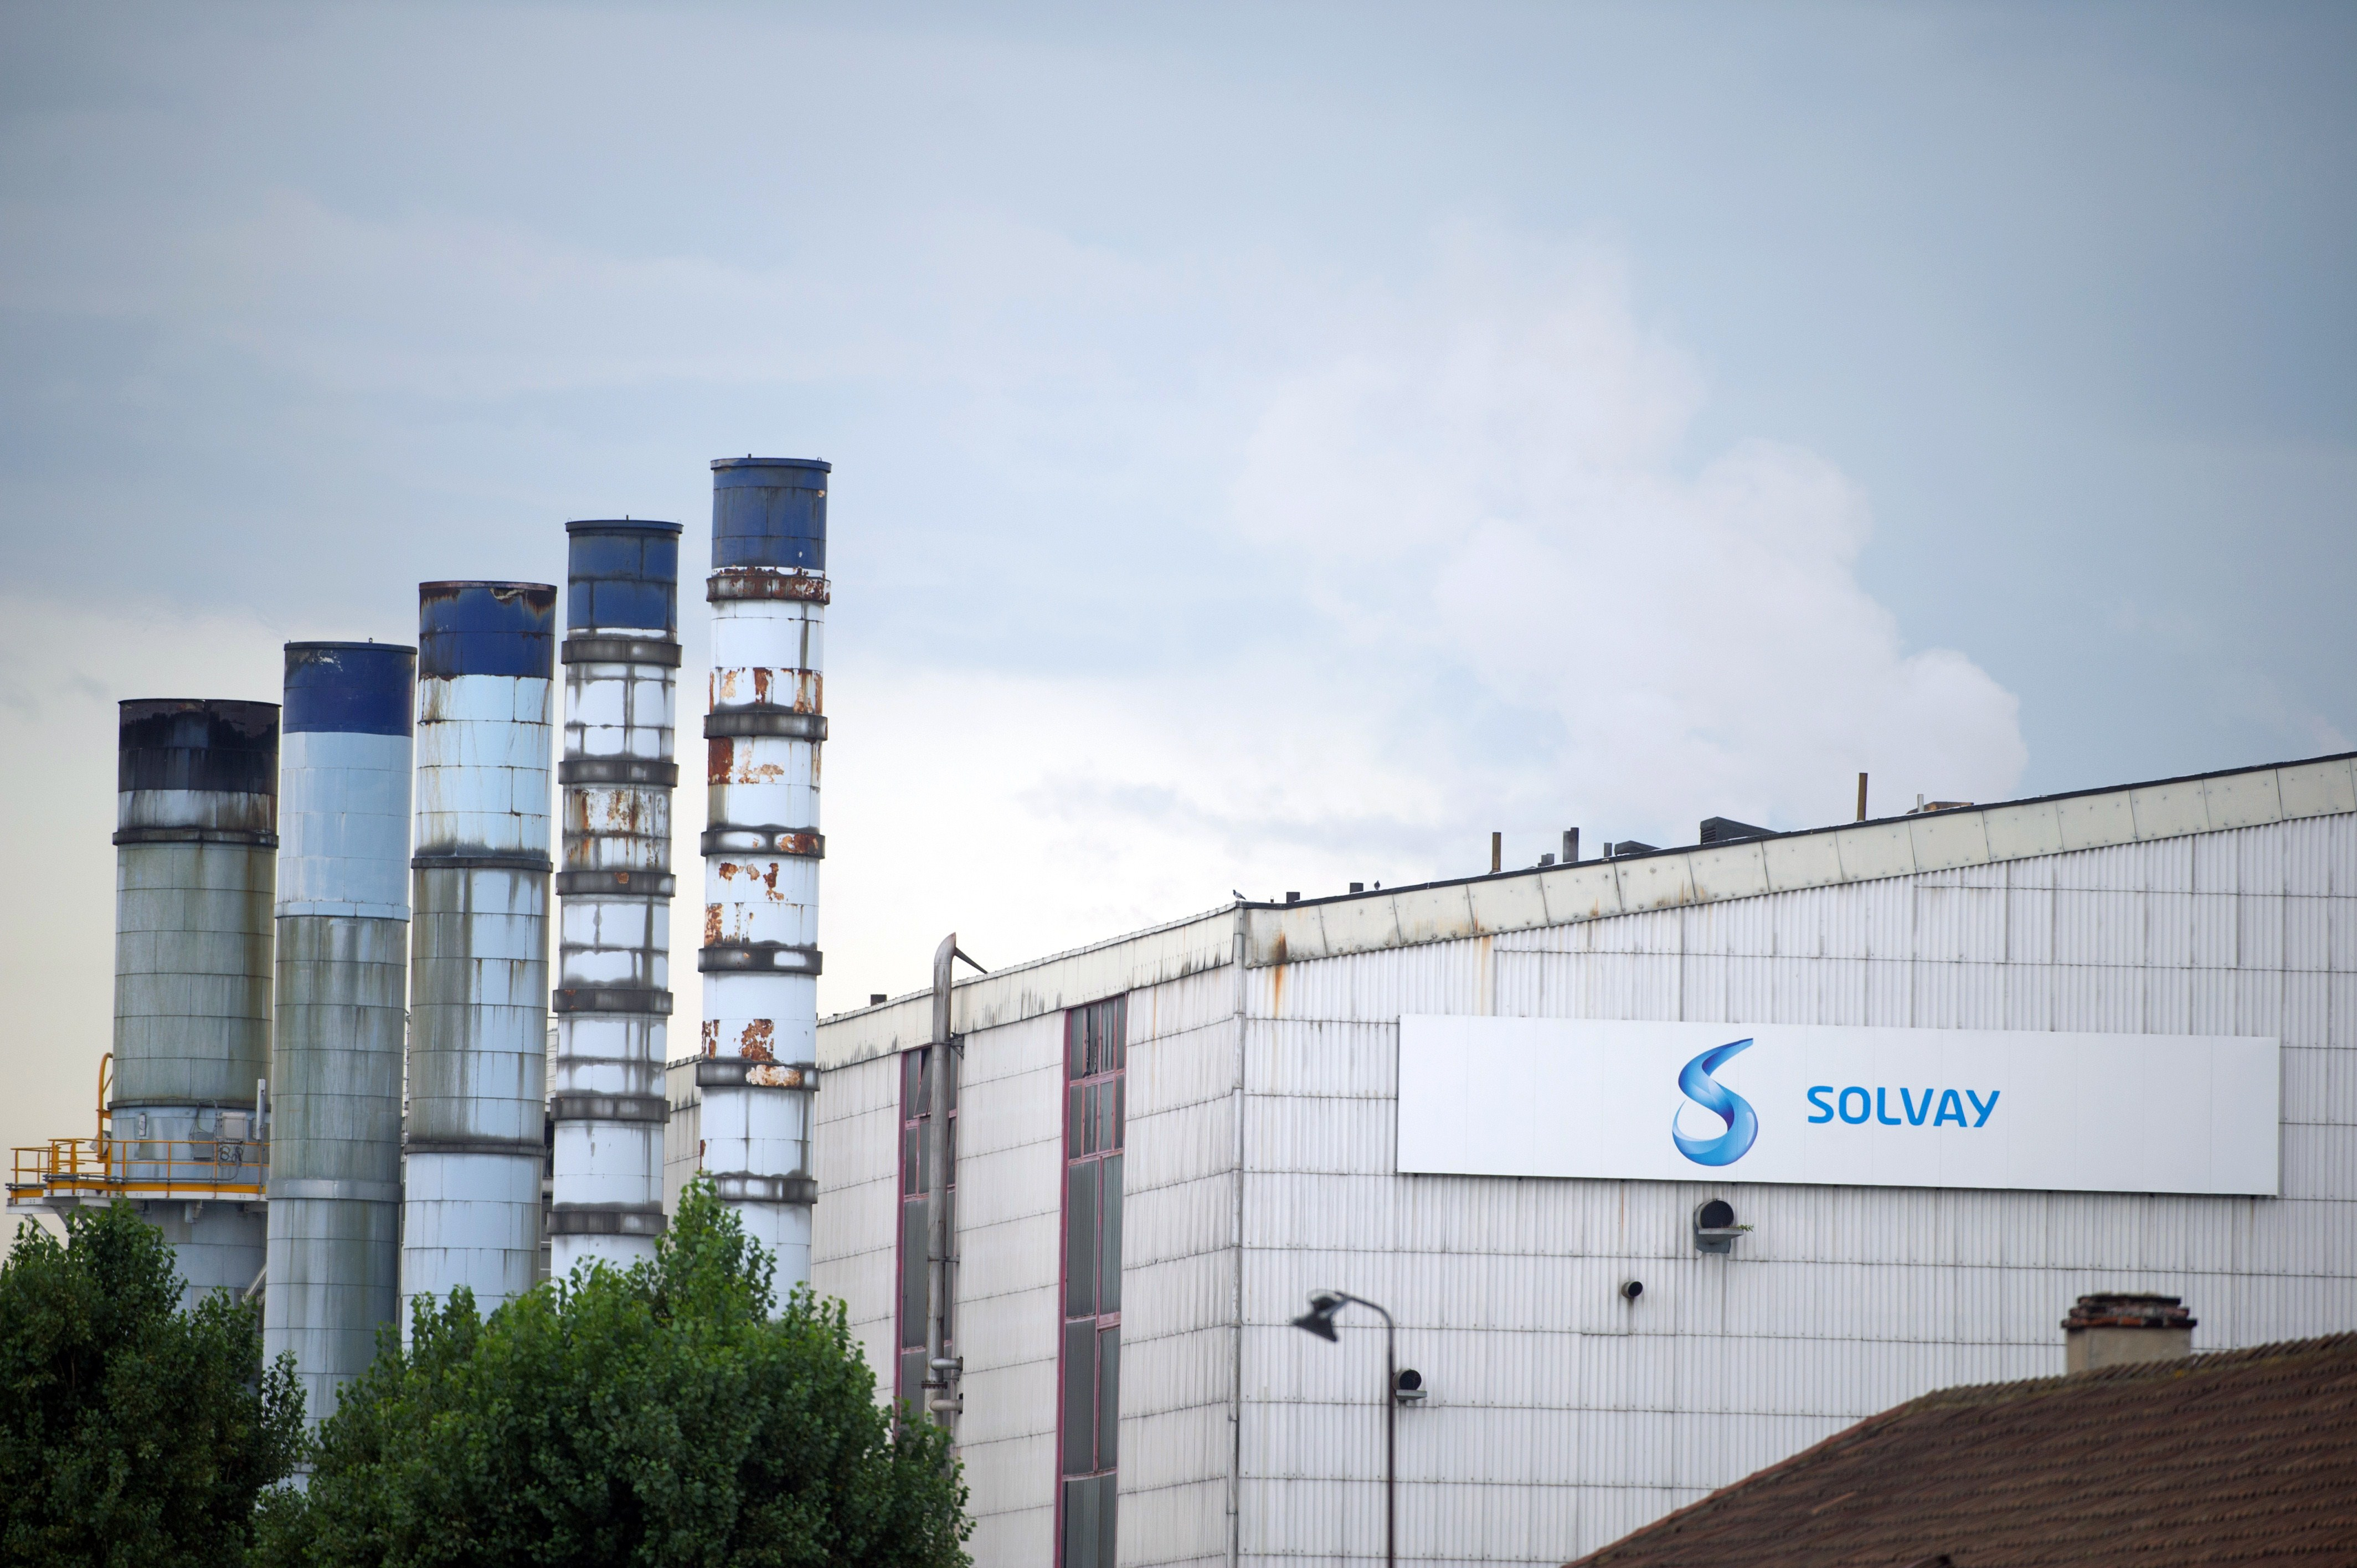 Solvay Buying Cytec in $5.5B Chemicals Deal